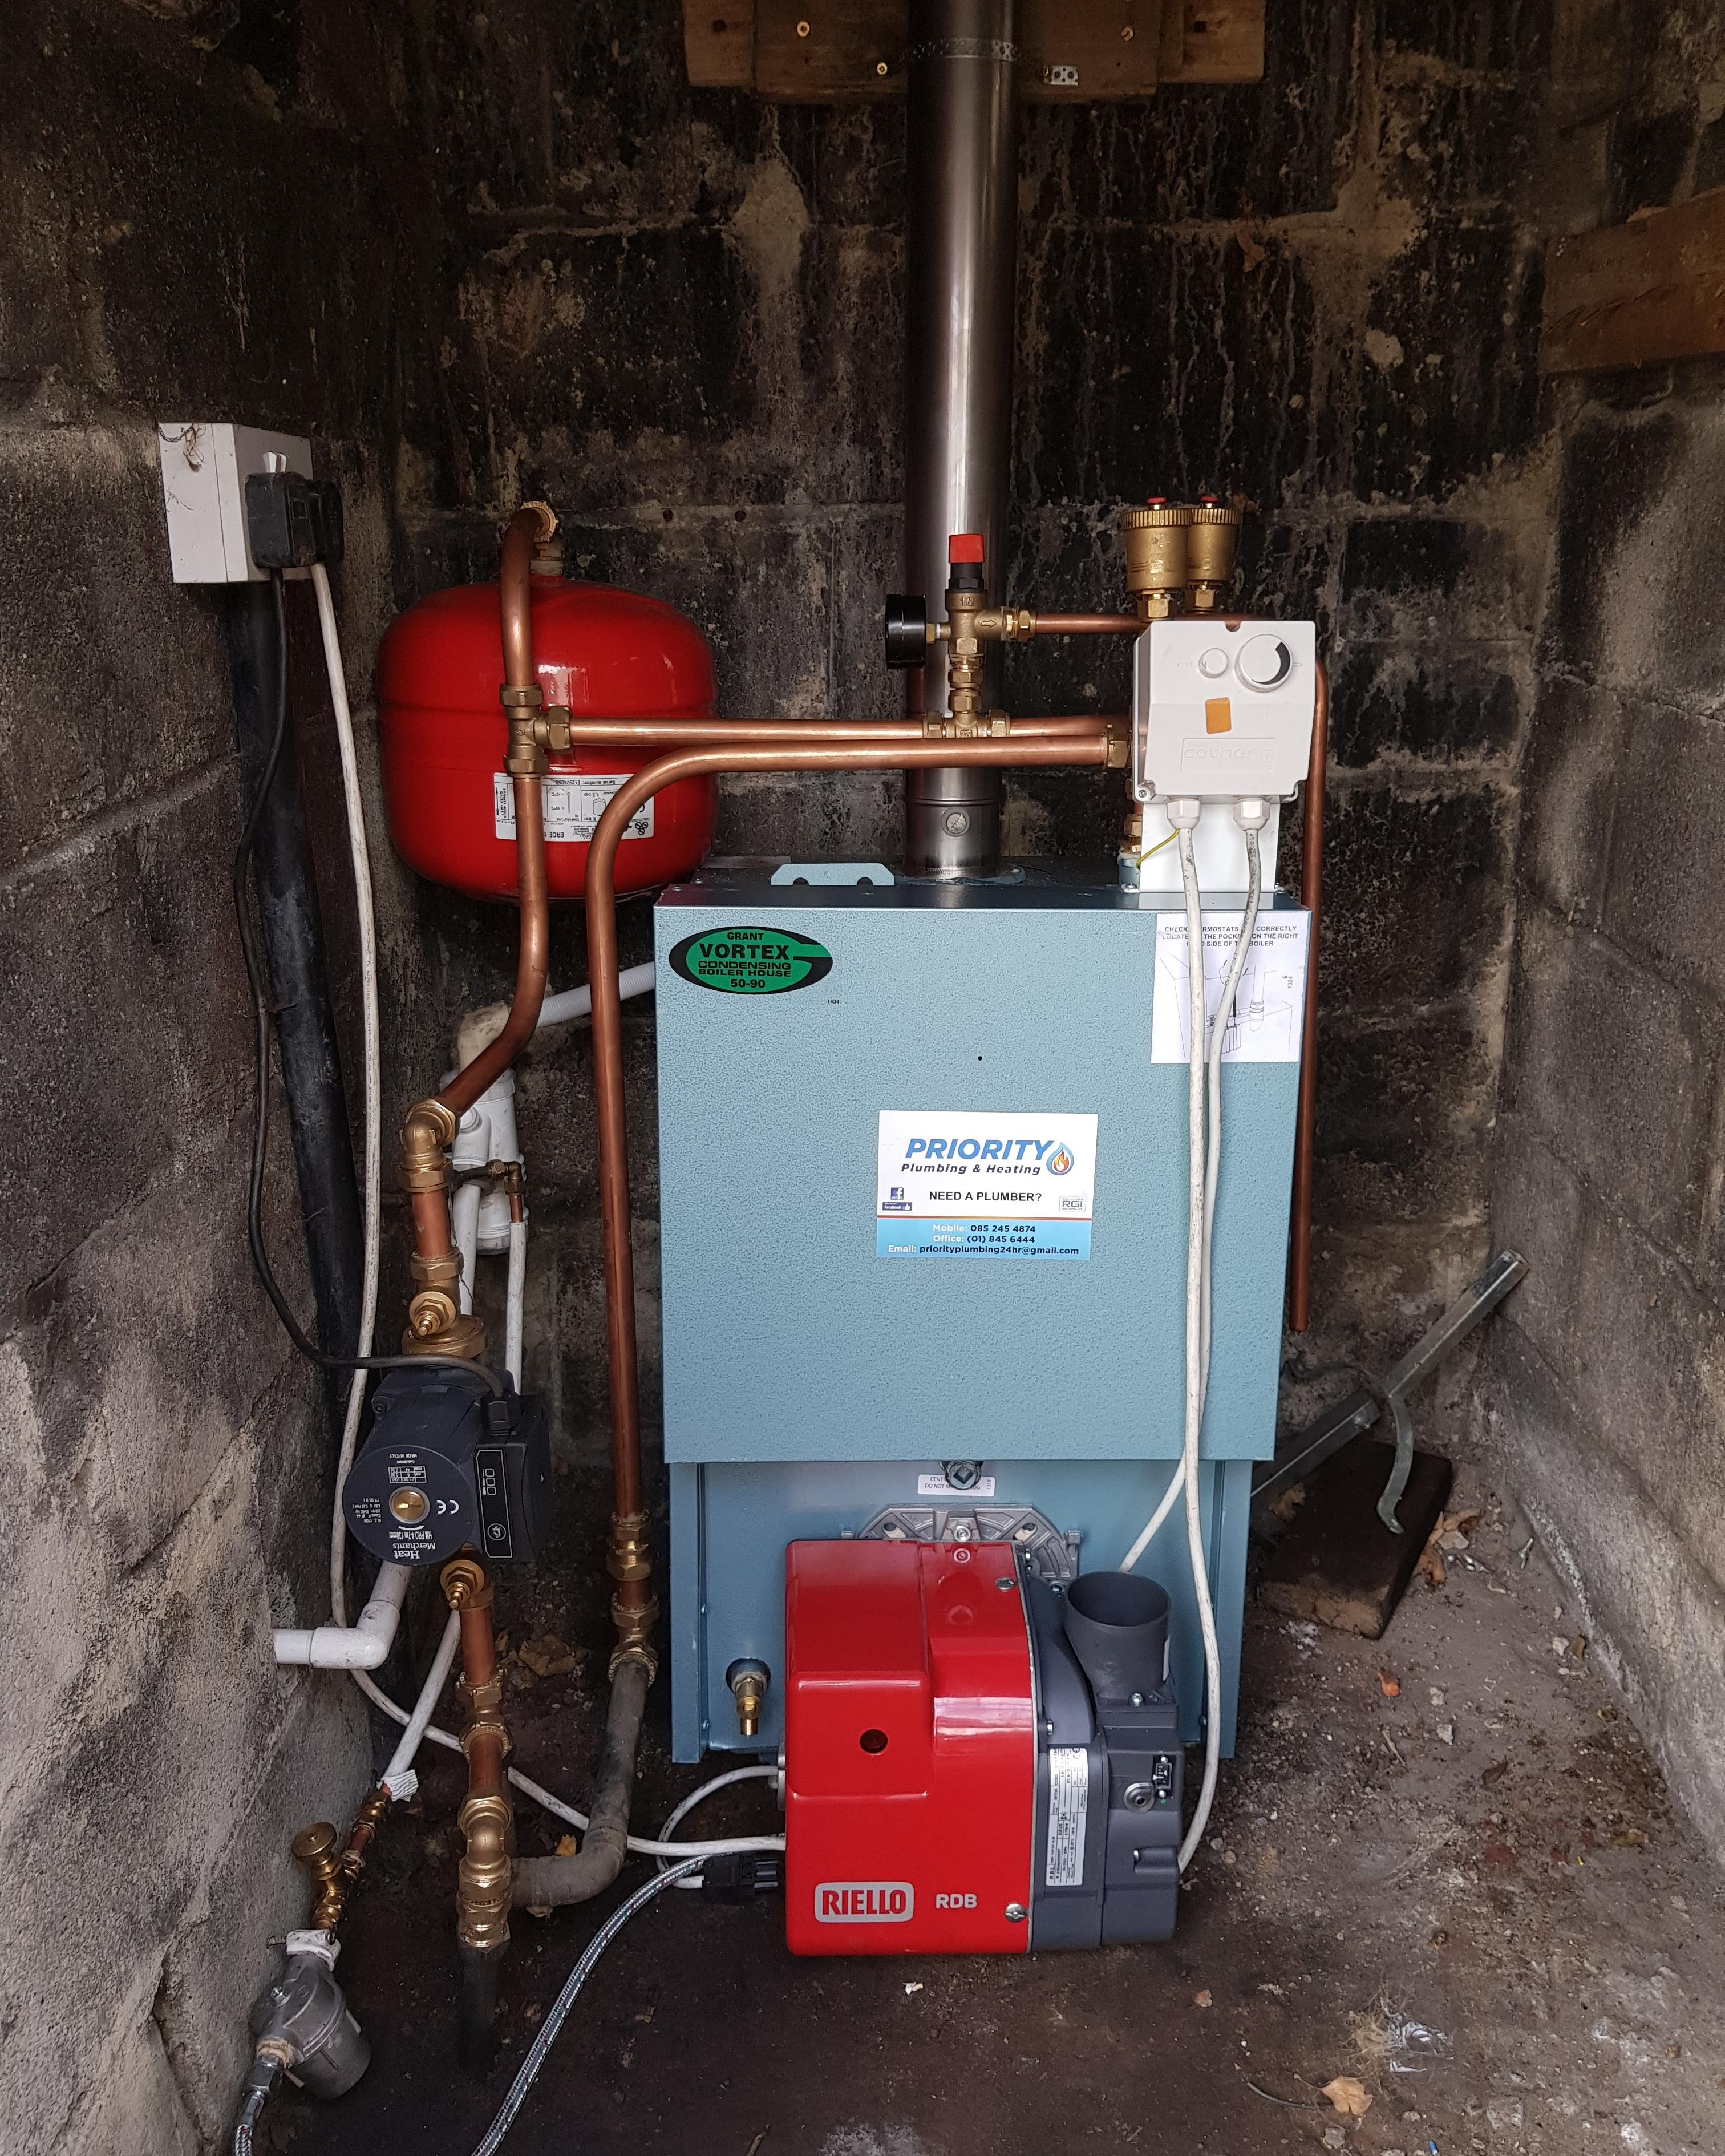 View Pictures and Photos For Priority plumbing and heating Welcome ...